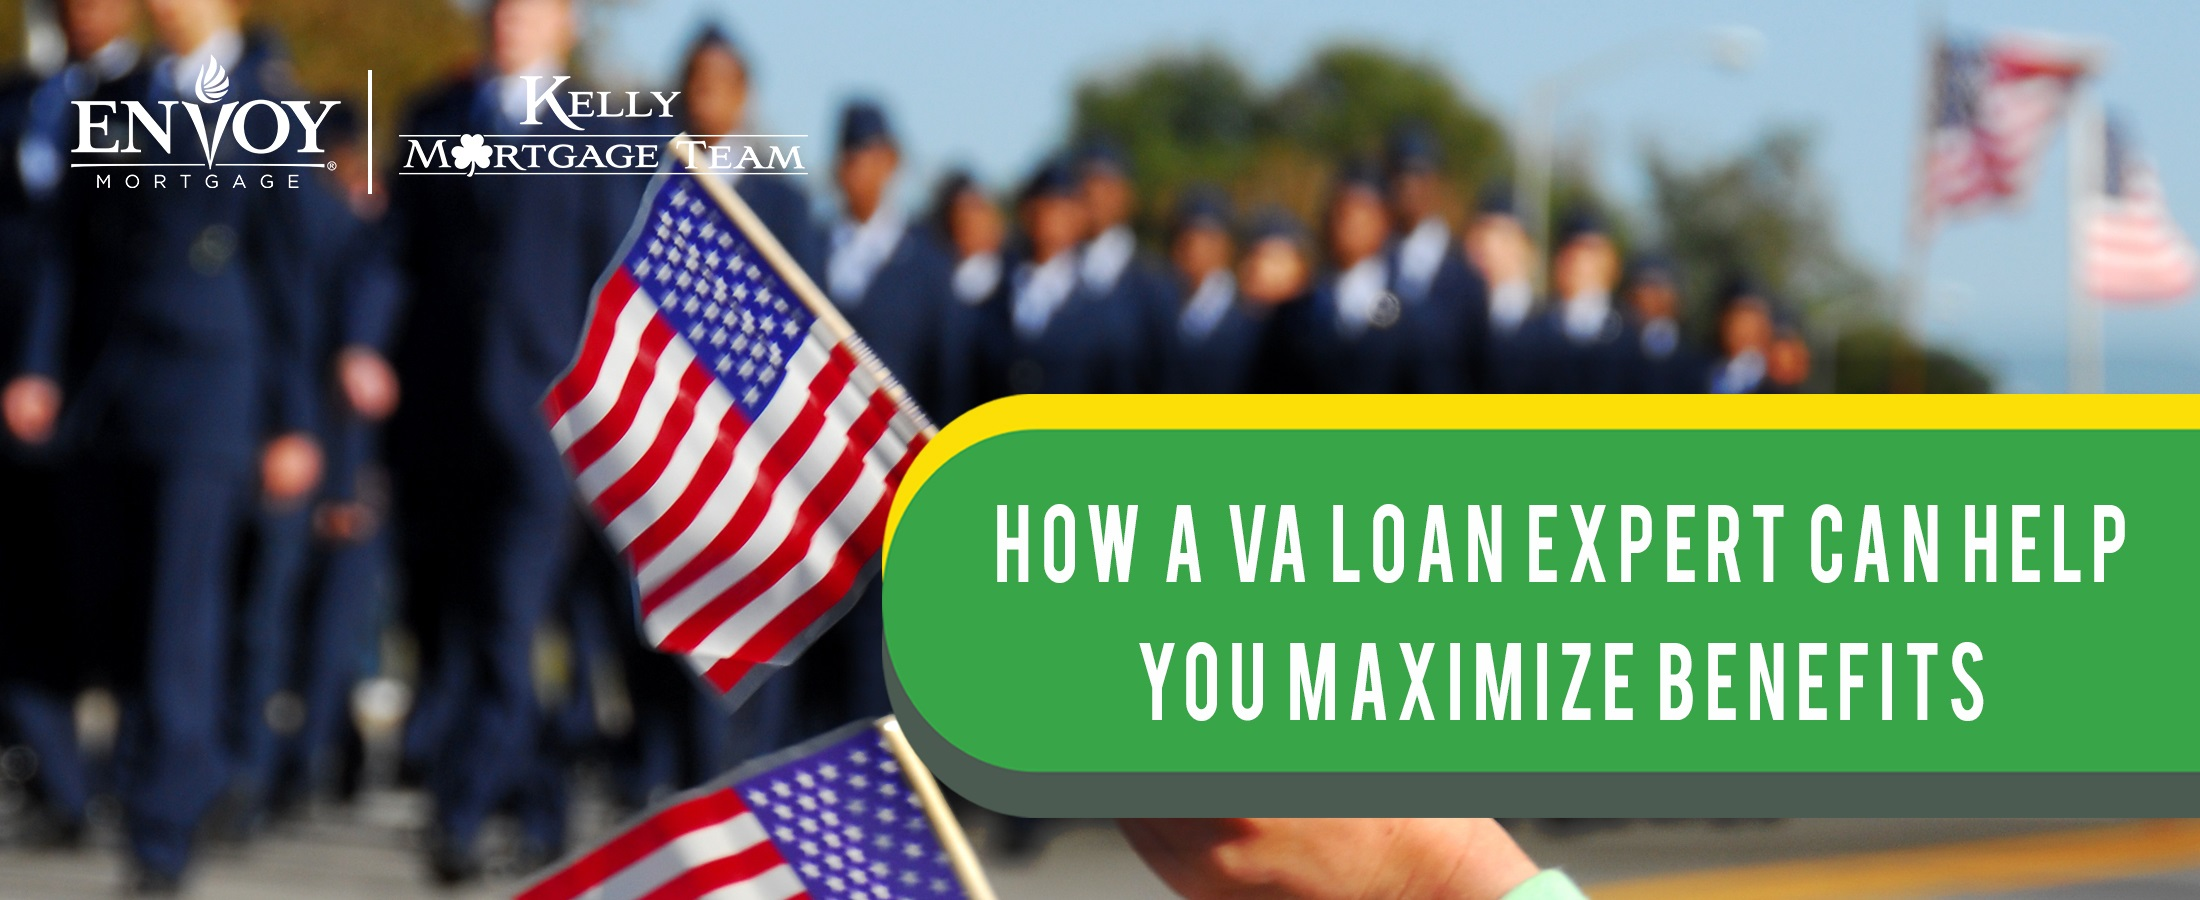 How A VA Loan Expert Can Help You Maximize Benefits